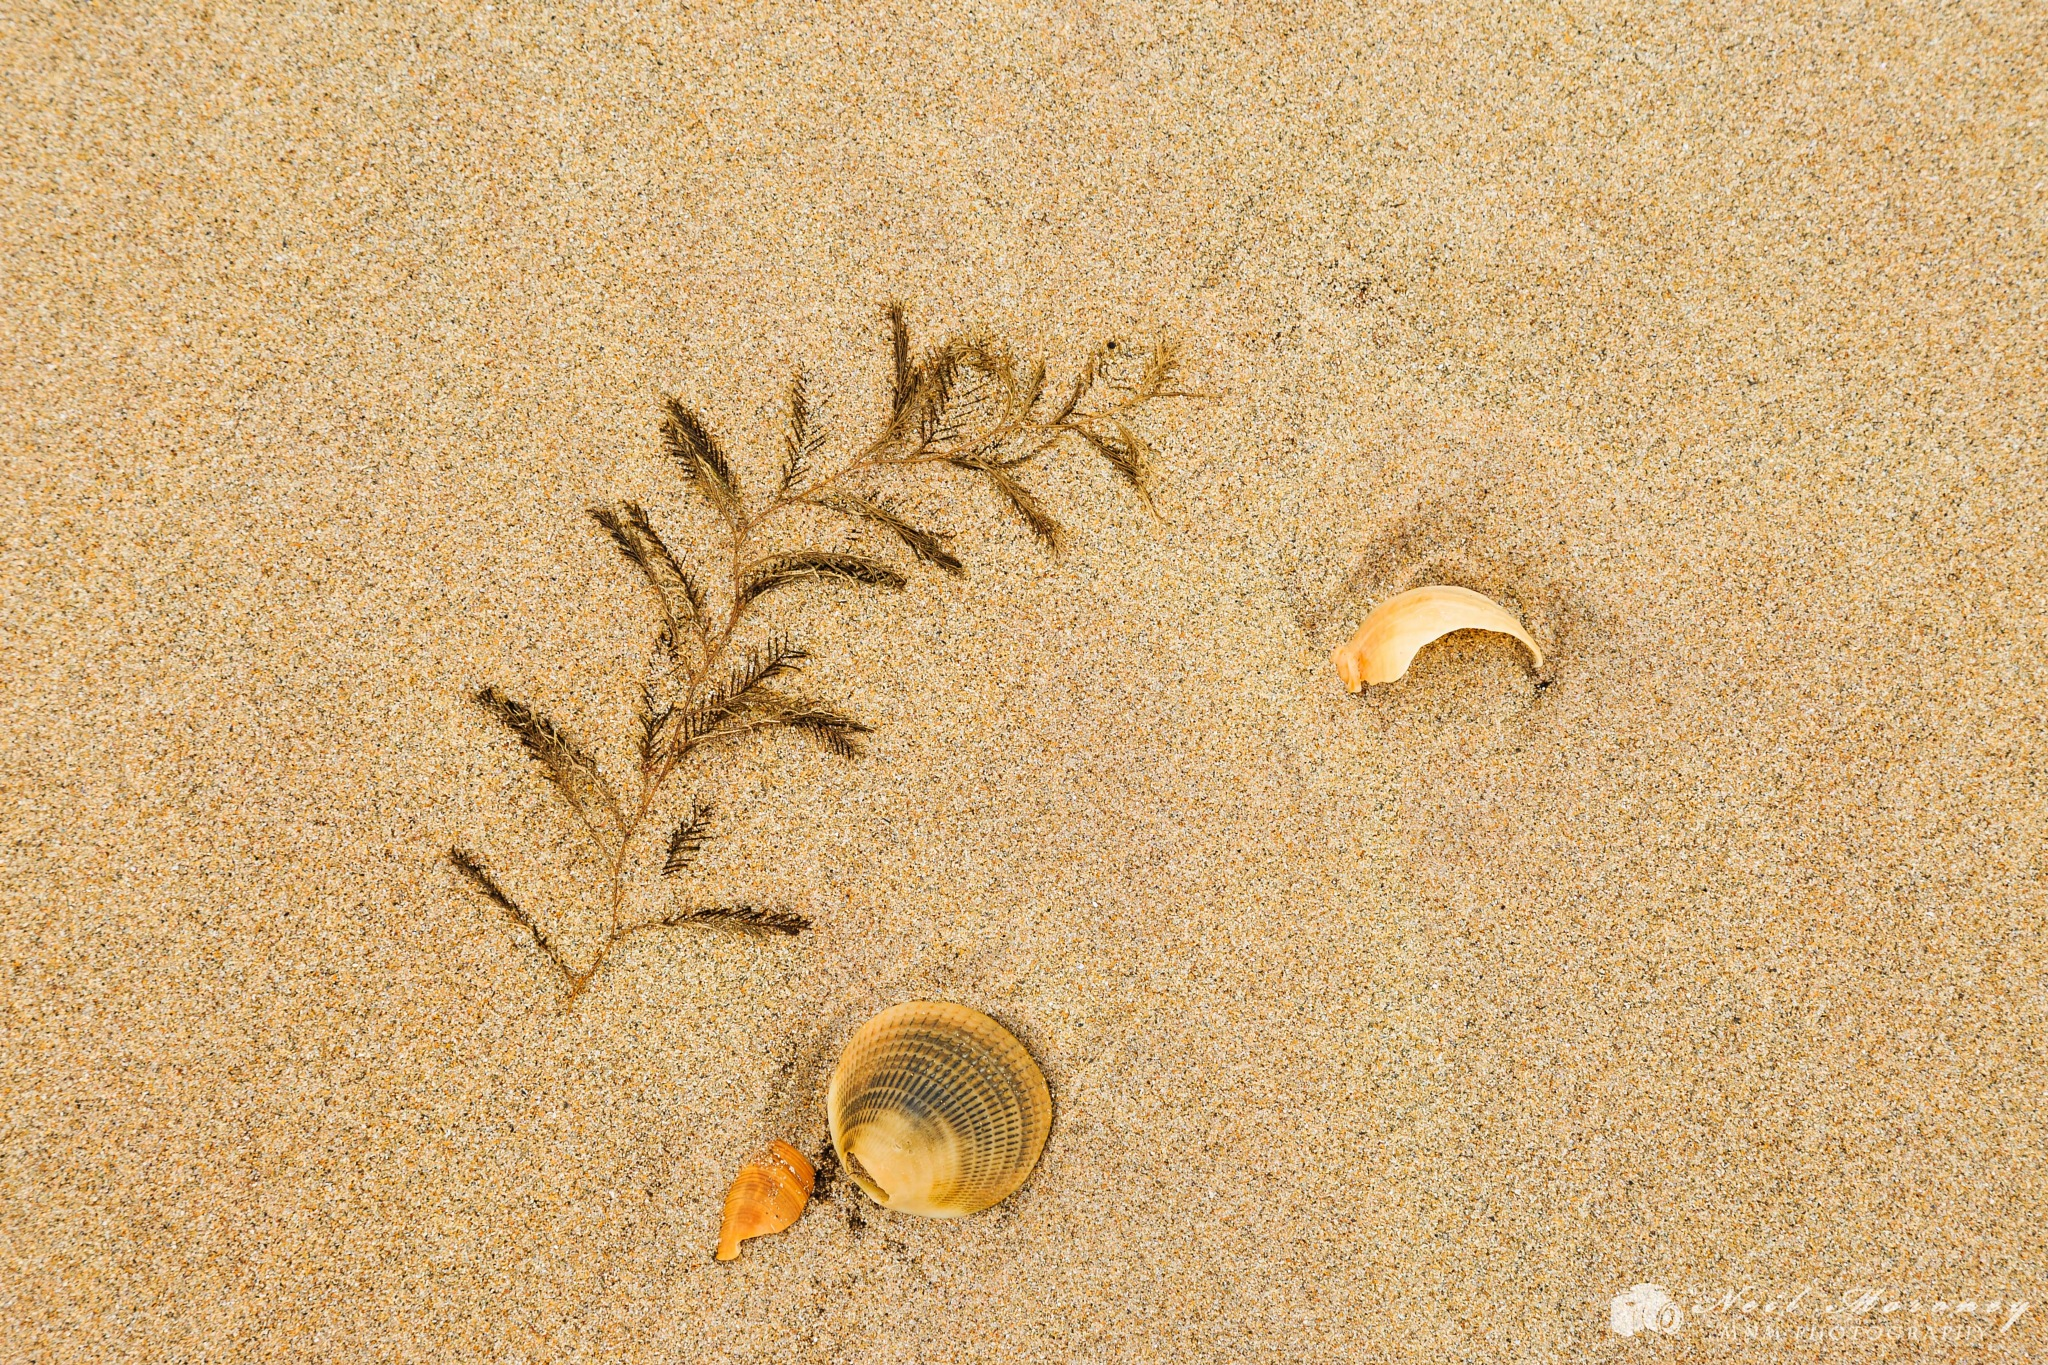 Beach Art by Neil Moroney